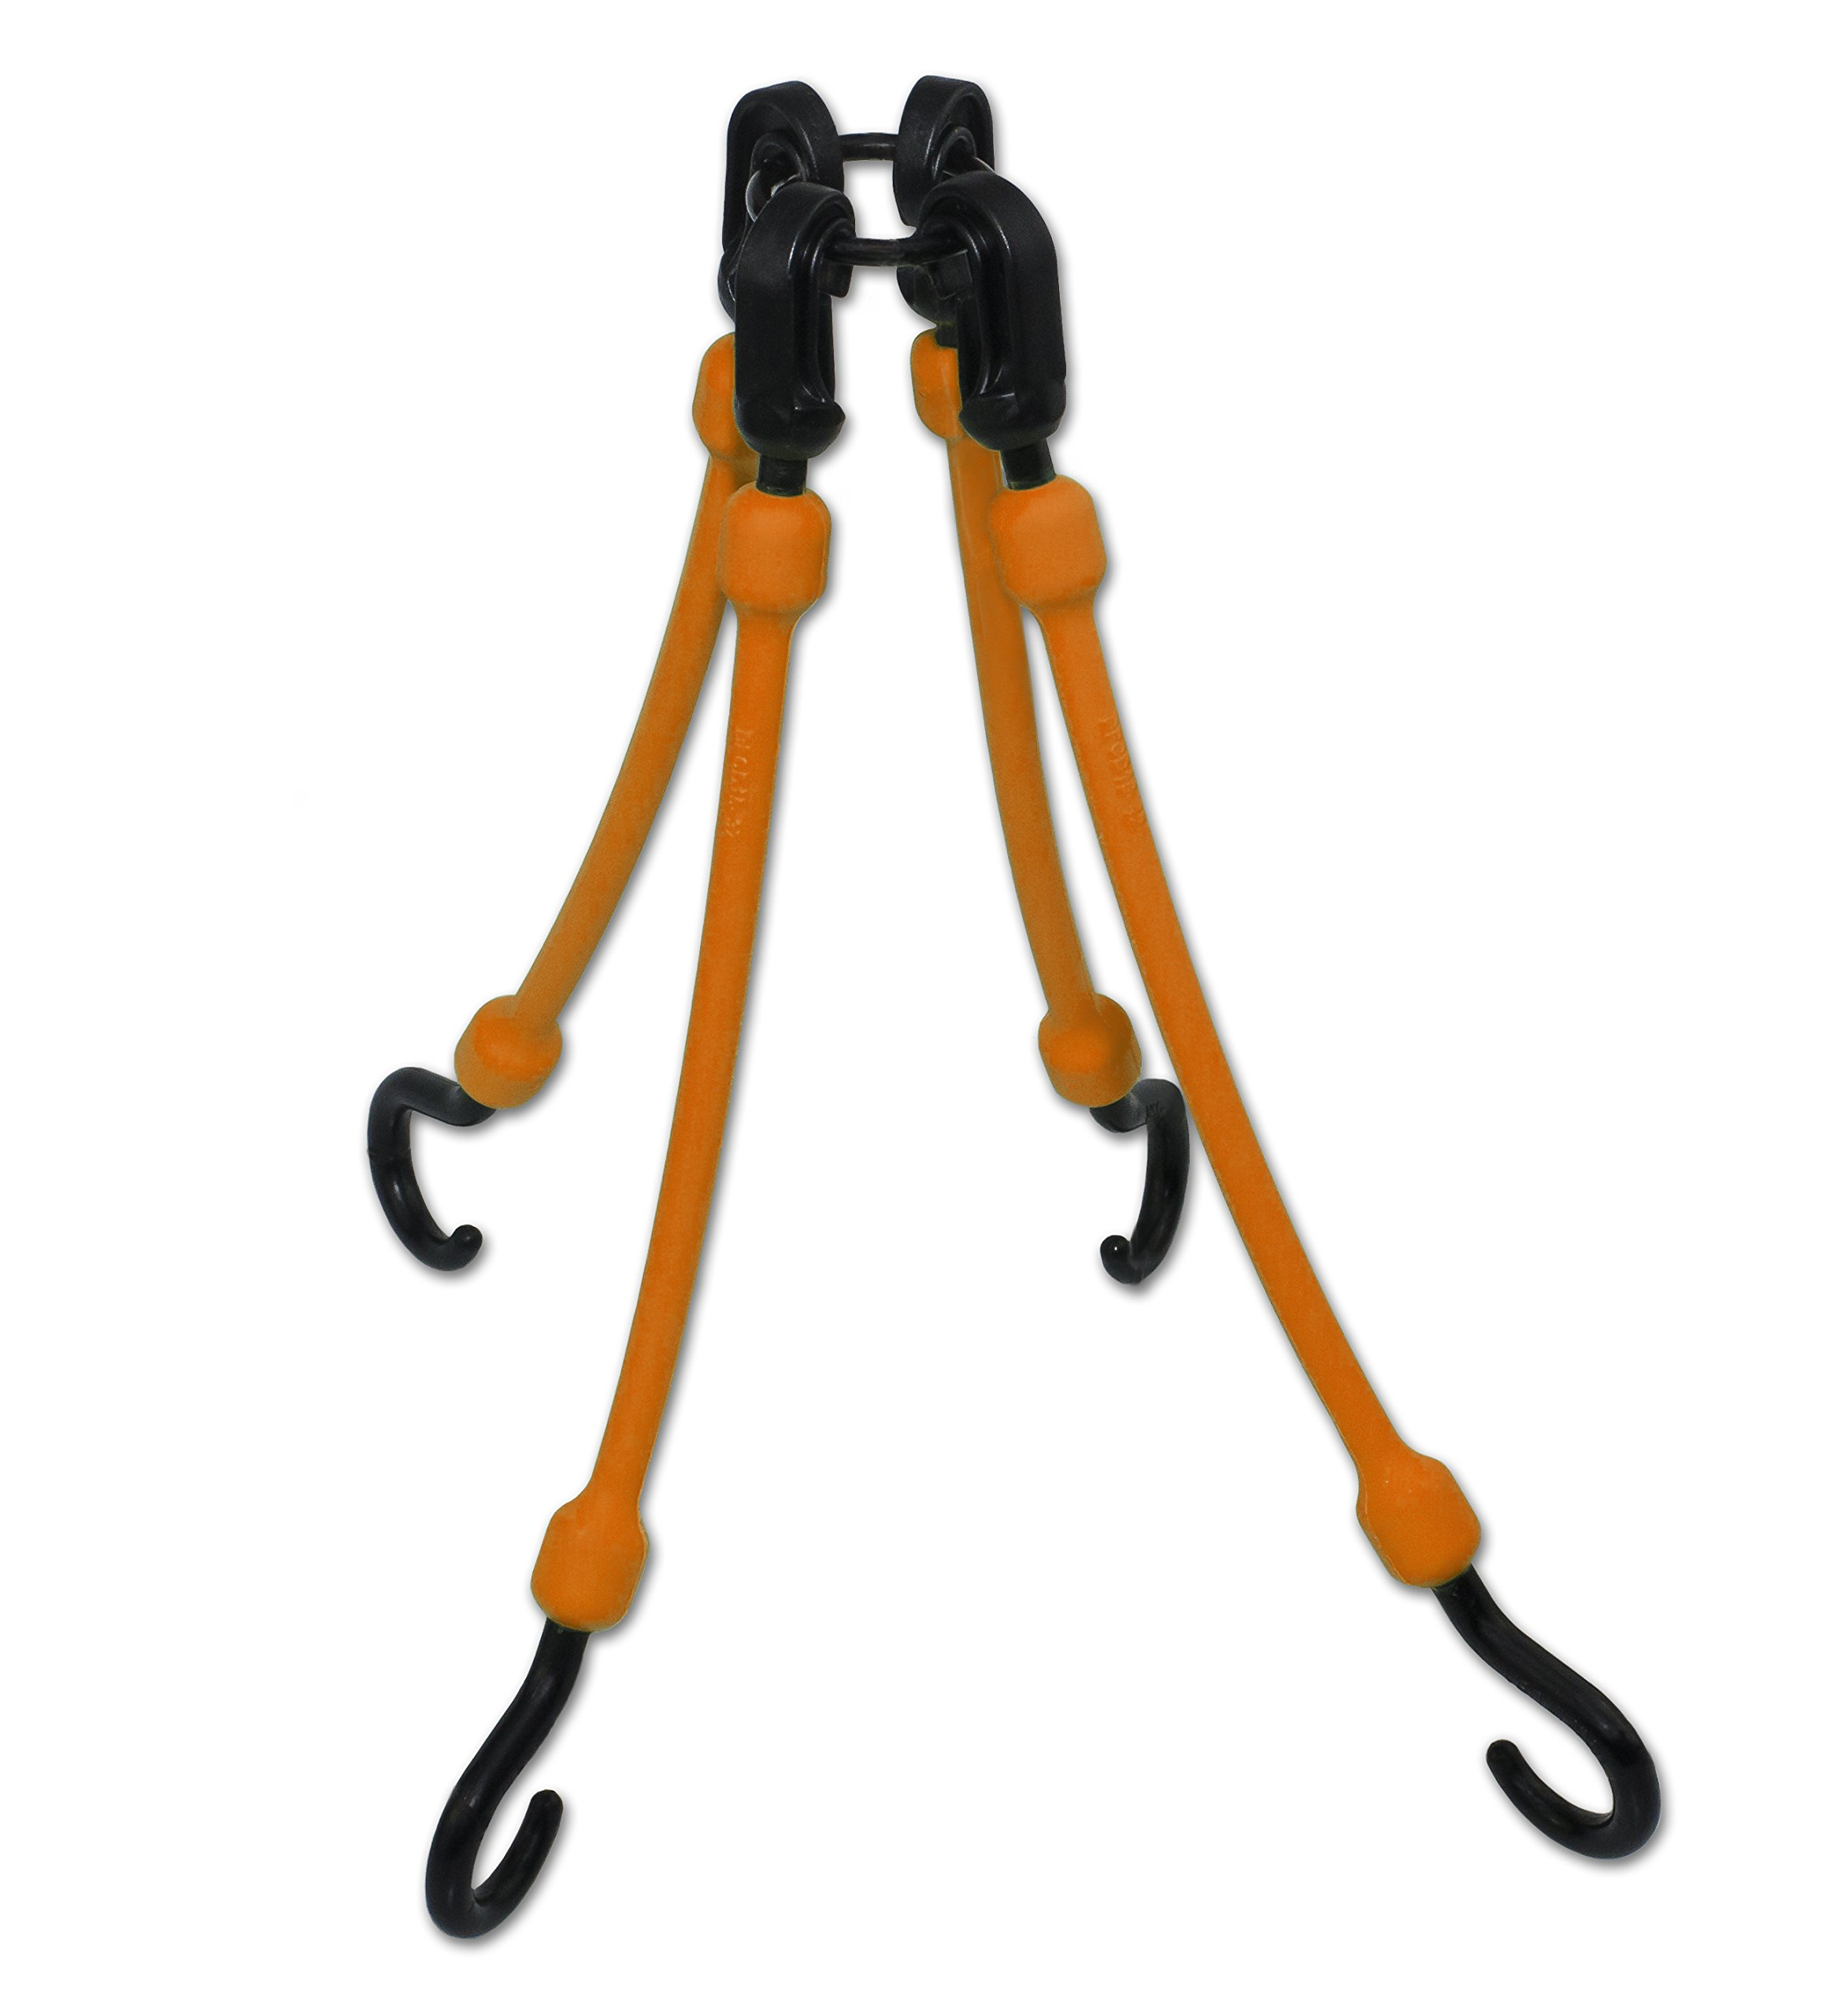 The Perfect Bungee by BihlerFlex FW12-4NG 4-Arm Flex-Web Bungee Cords 4, 12''-24'', Safety Orange